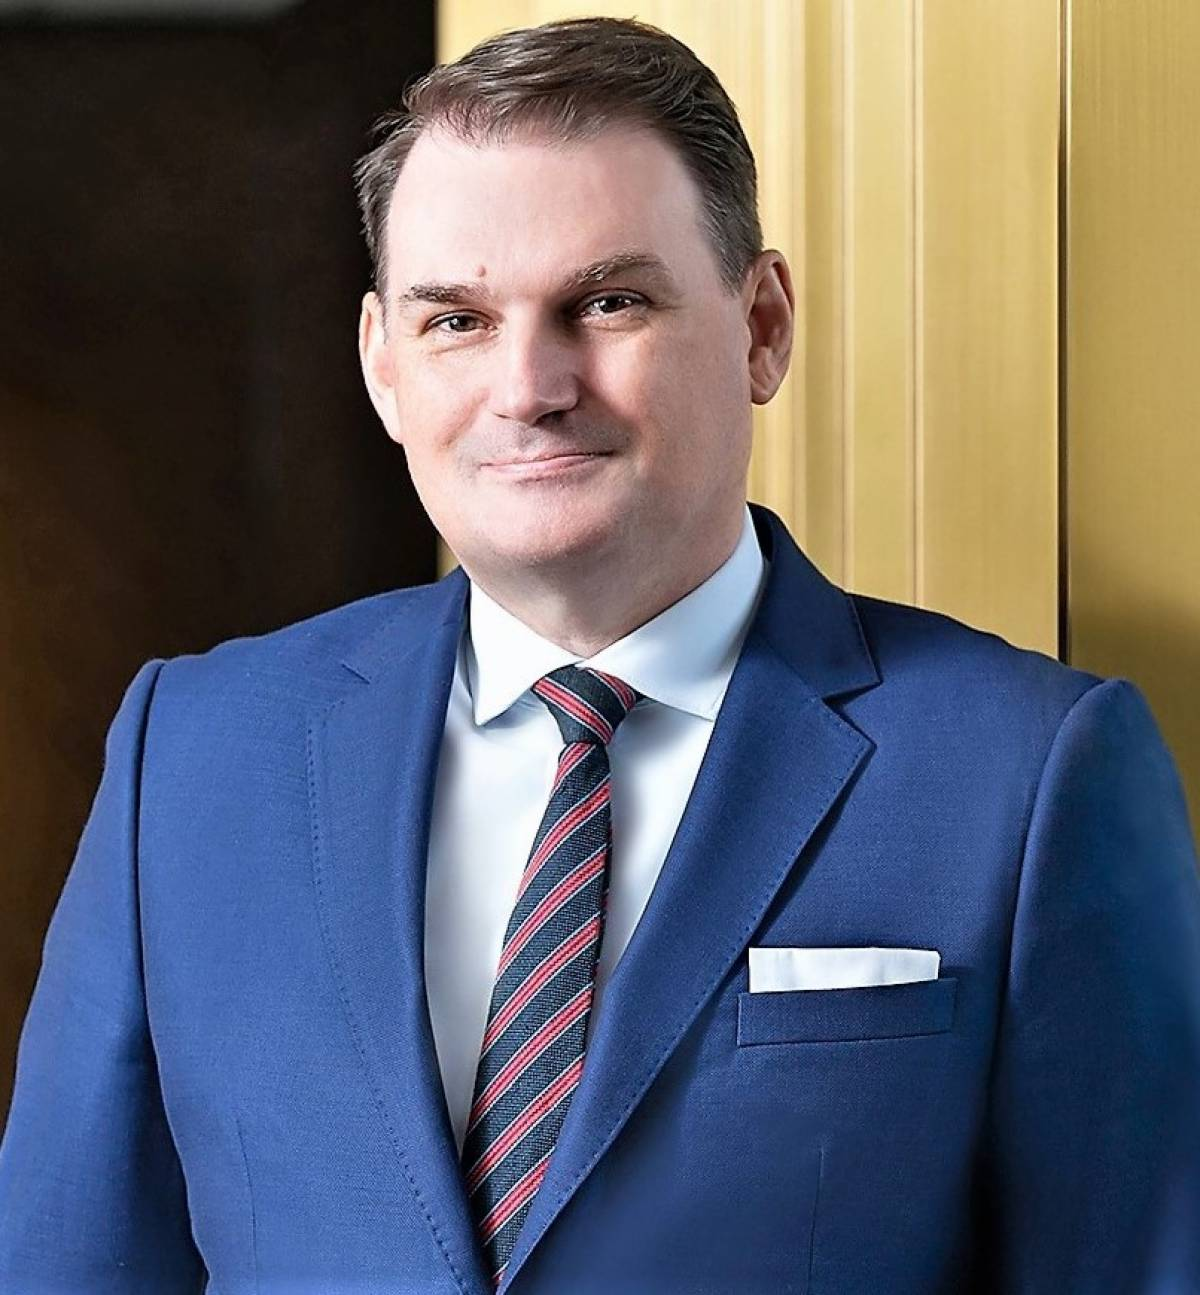 Wharf Hotels Appoints Michael Poutawa Group Director Restaurants, Bars & Events